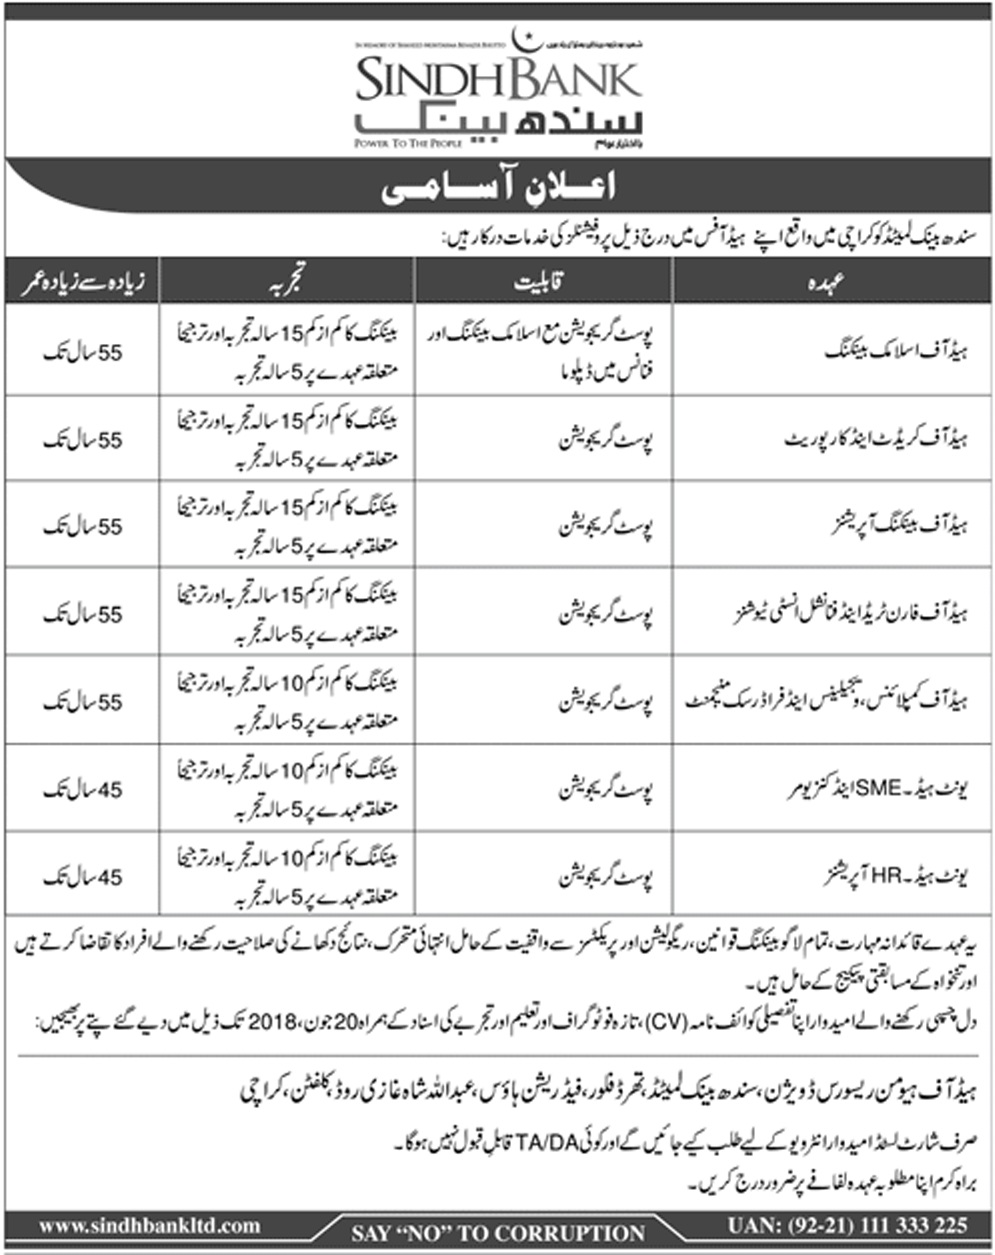 Sindh Bank Limited Latest jobs June 2018